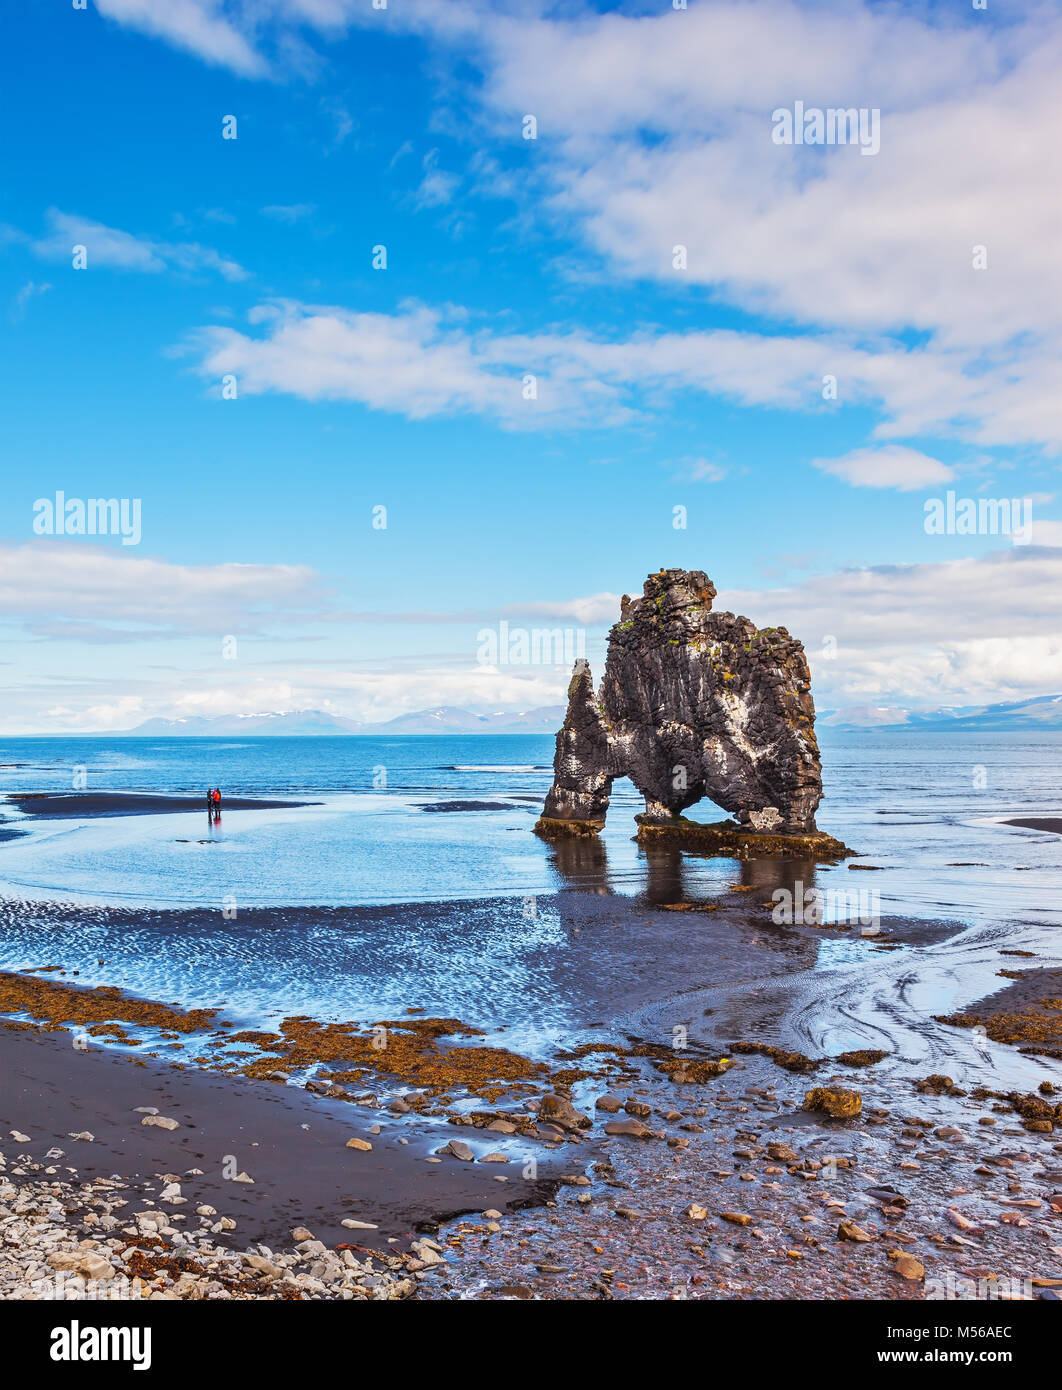 The picturesque cliff in the Bay of Huna im Iceland - Stock Image